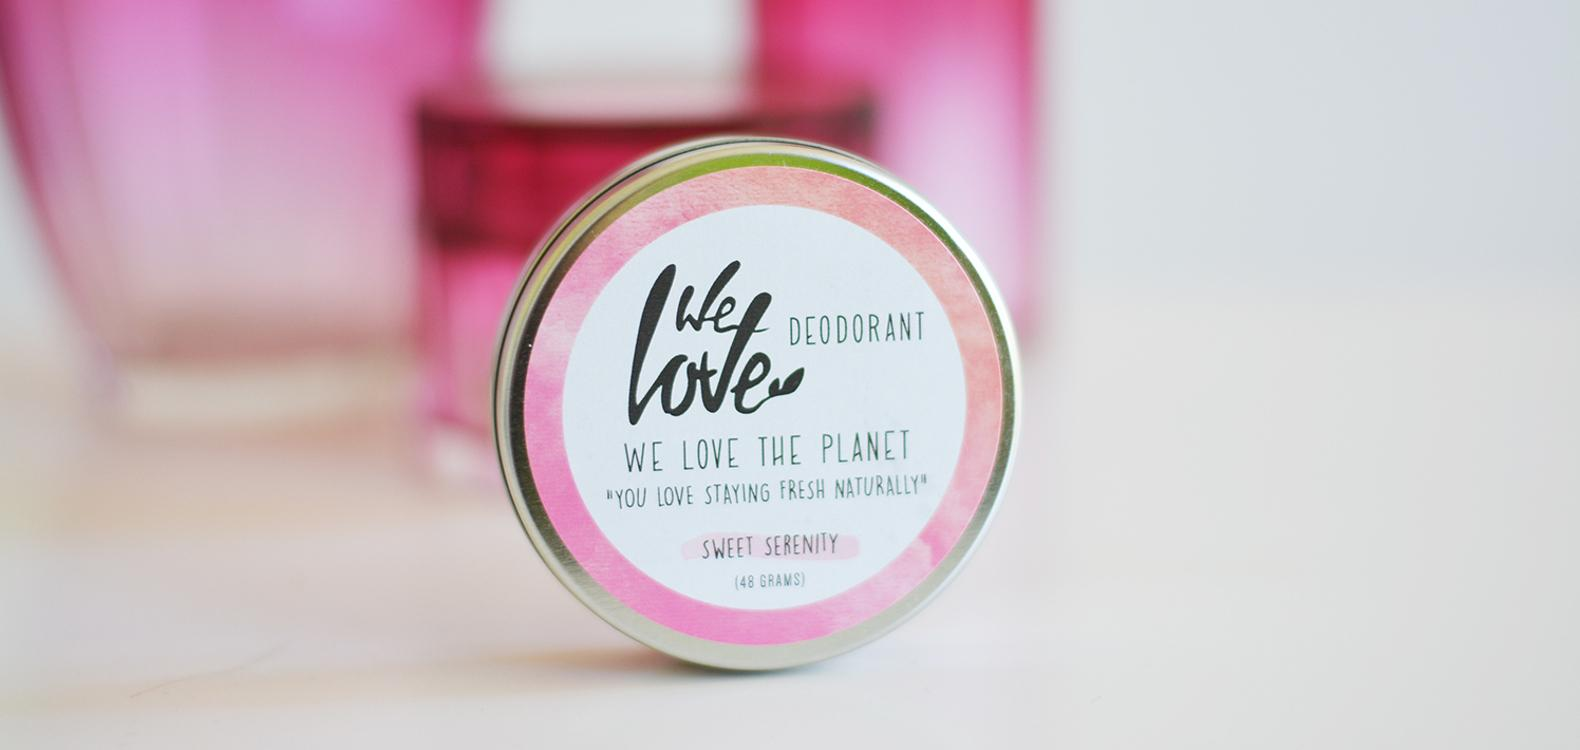 WE LOVE THE PLANET | DEODORANTS | NATUURLIJK | moscowwebshop.com